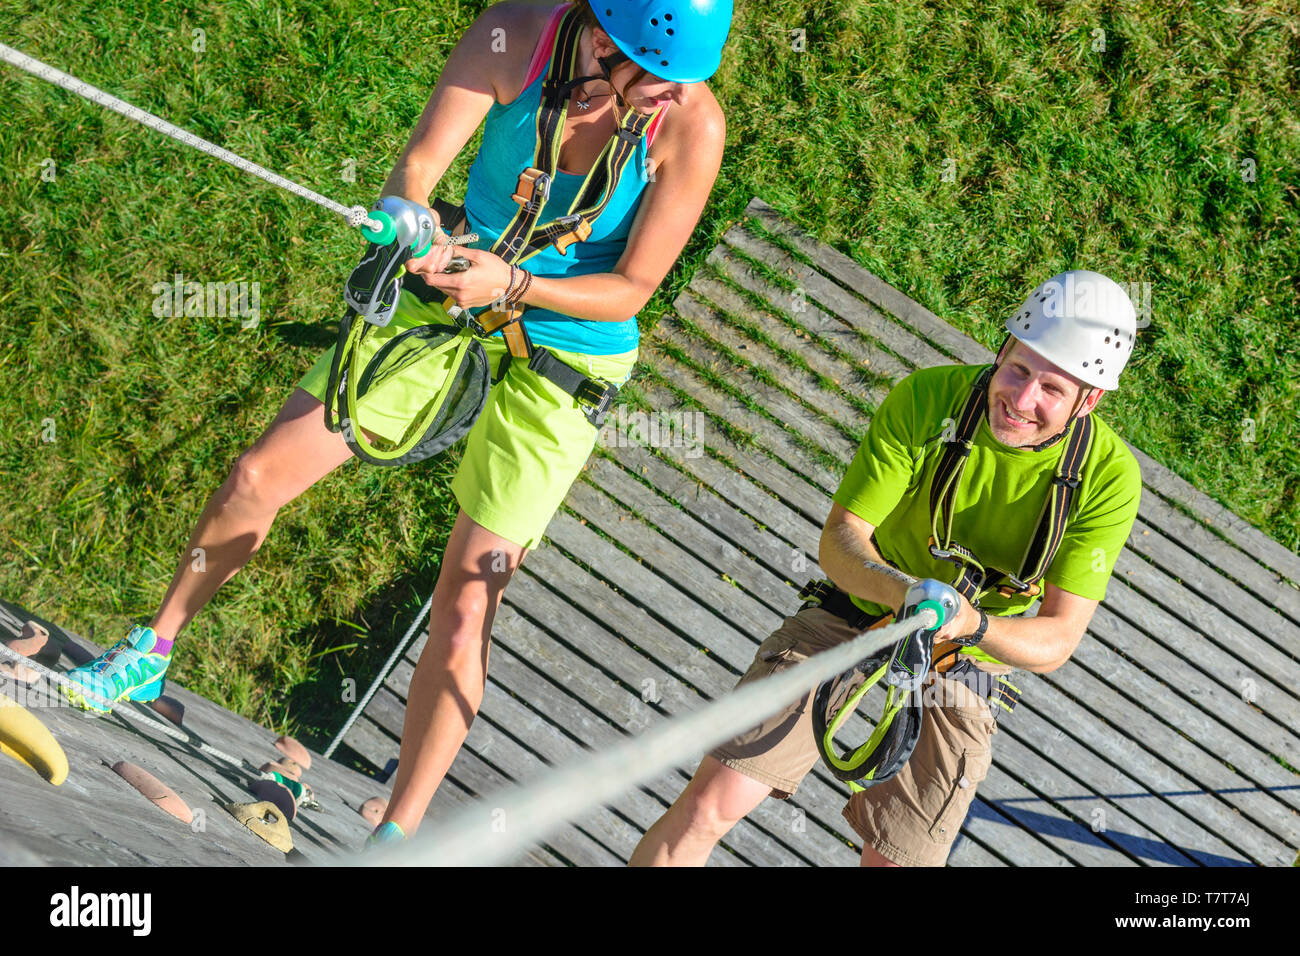 Two adults during an abseiling exercise in high ropes park Stock Photo